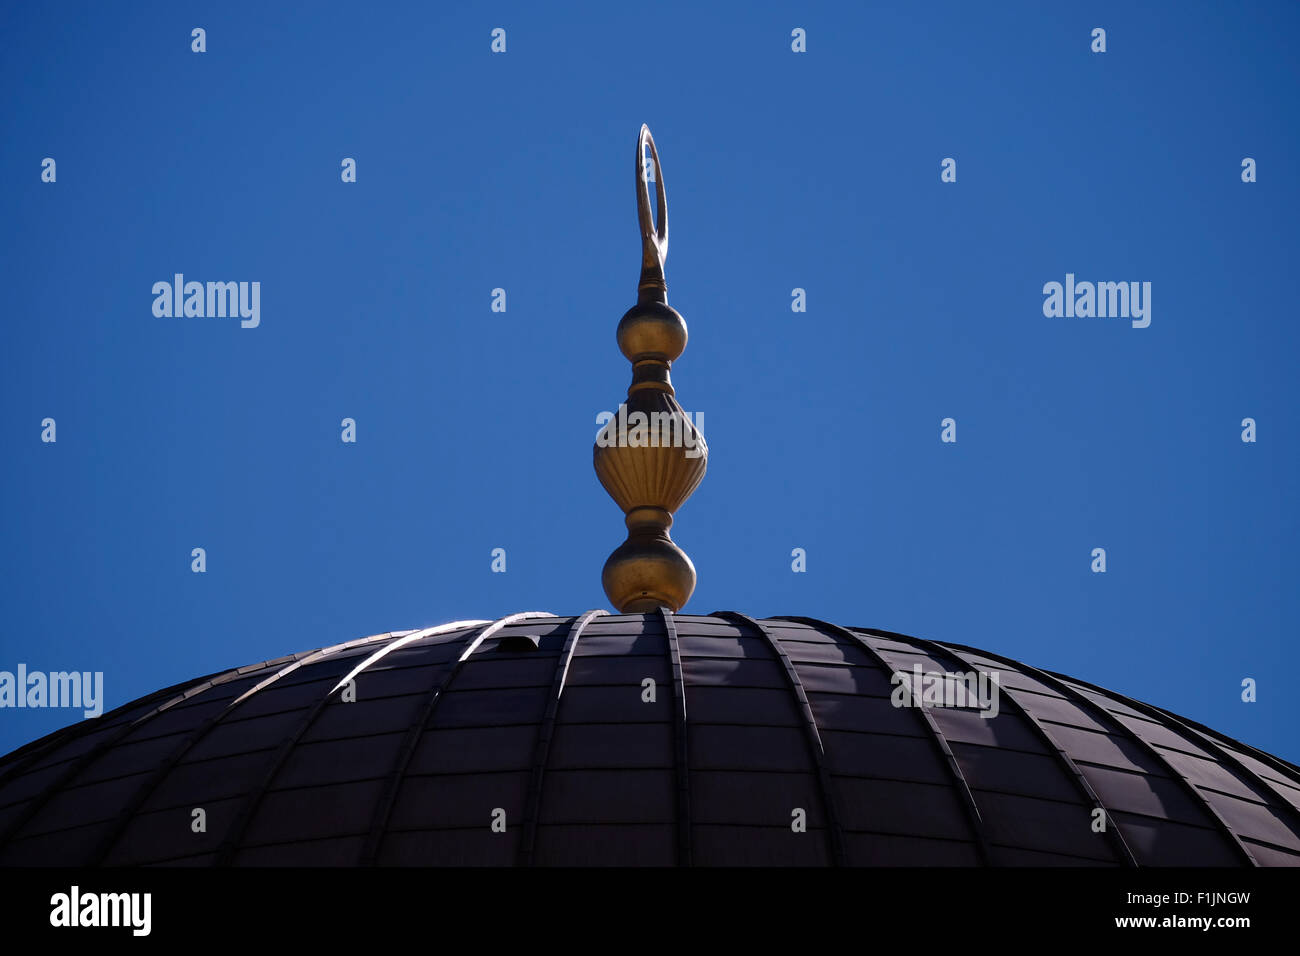 Dome of the Islamic shrine Haram al Sharif or Dome of the Rock mosque at the Temple Mount in the old city East Jerusalem - Stock Image